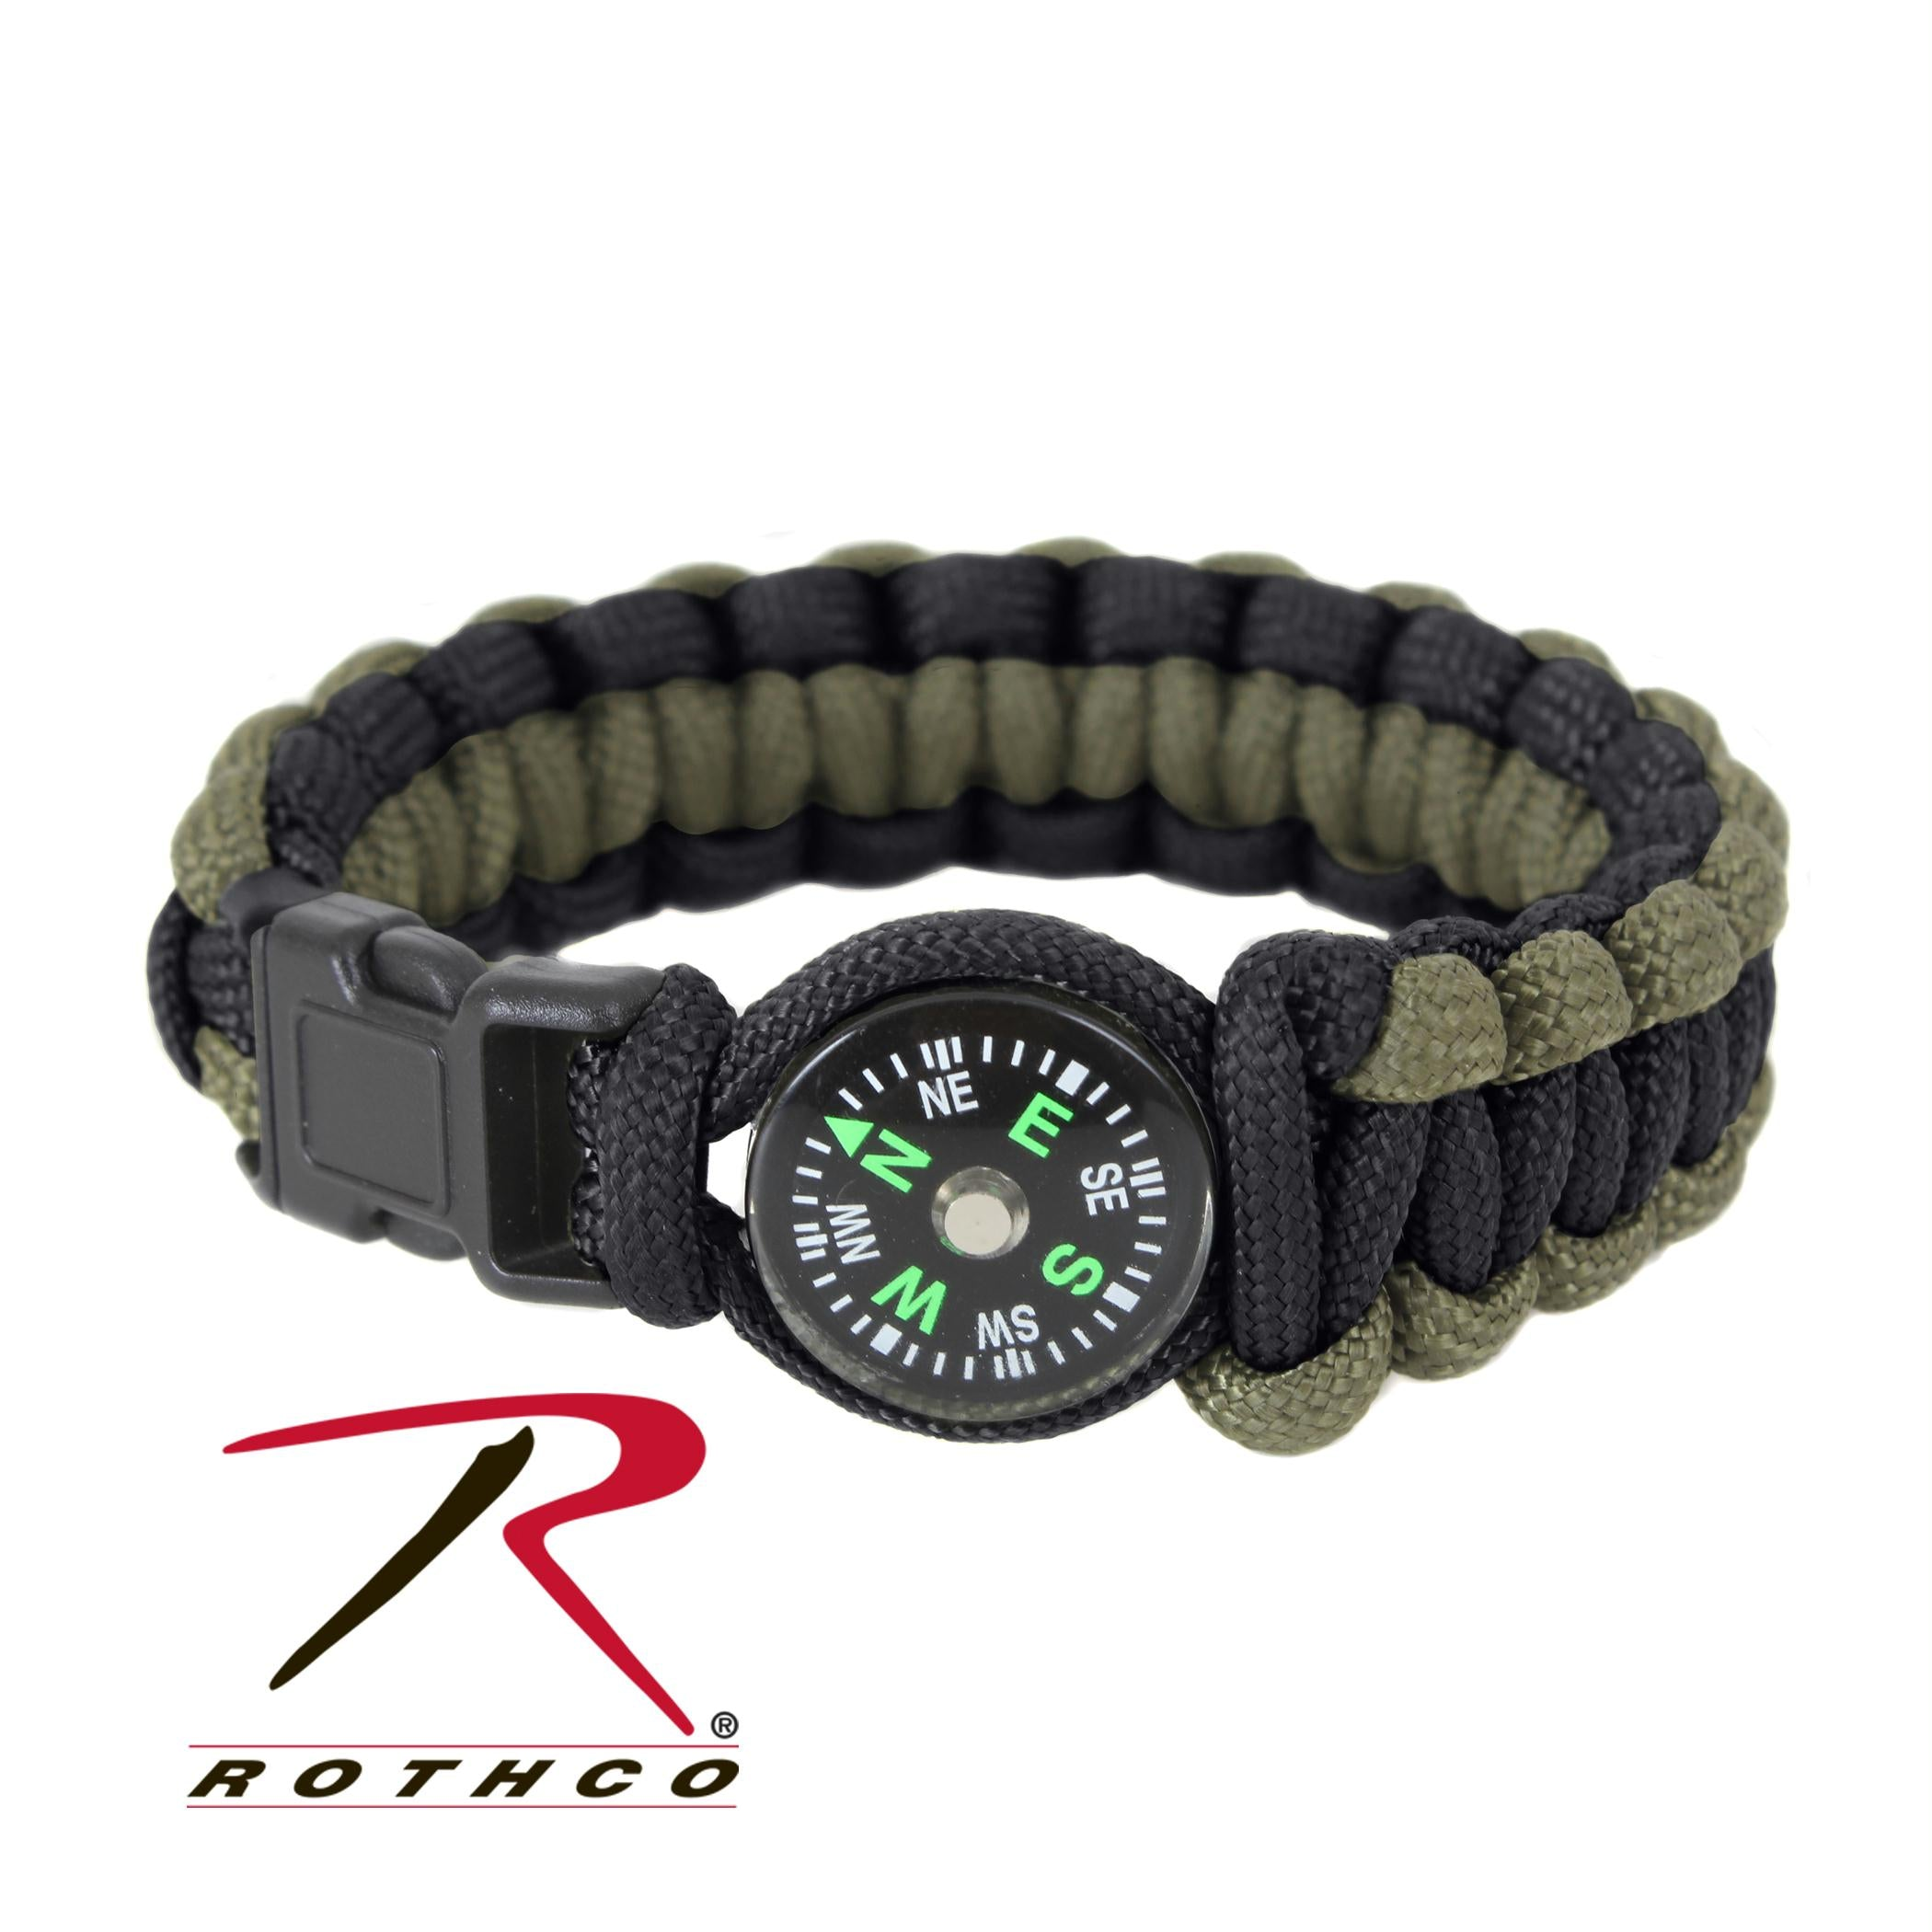 Rothco Paracord Compass Bracelet - Olive Drab / Black / 8 Inches